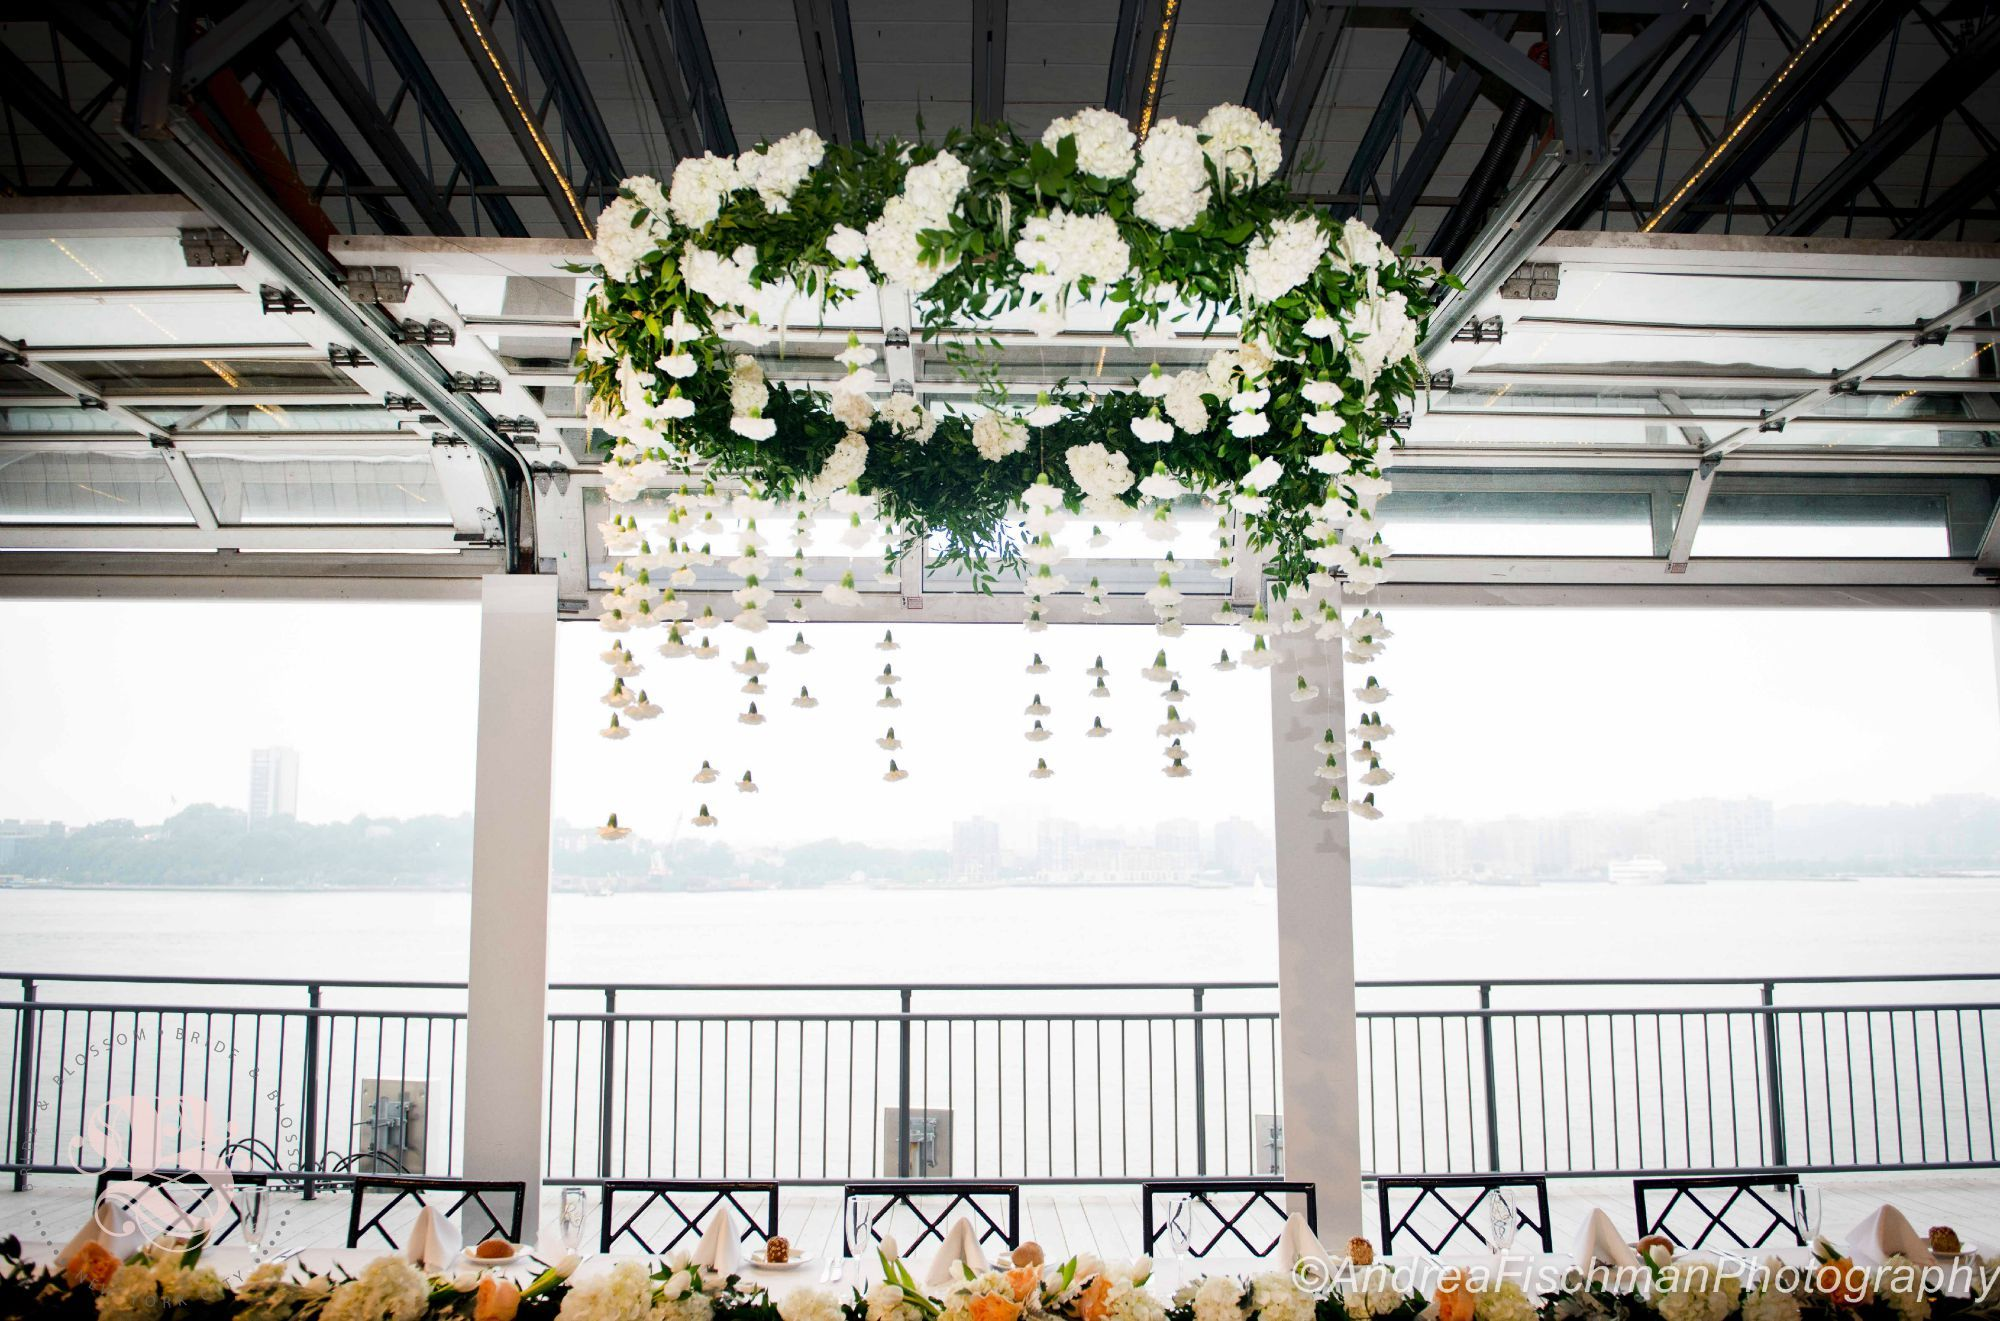 Floral Chandelier, suspended over head table with floral runner. Summer wedding, on the Sunset Terrace at Chelsea Piers in Manhattan. What could be more romantic than hanging florals? White flowers appear to float in air... Photo by Andrea Fischman #floralchandelier